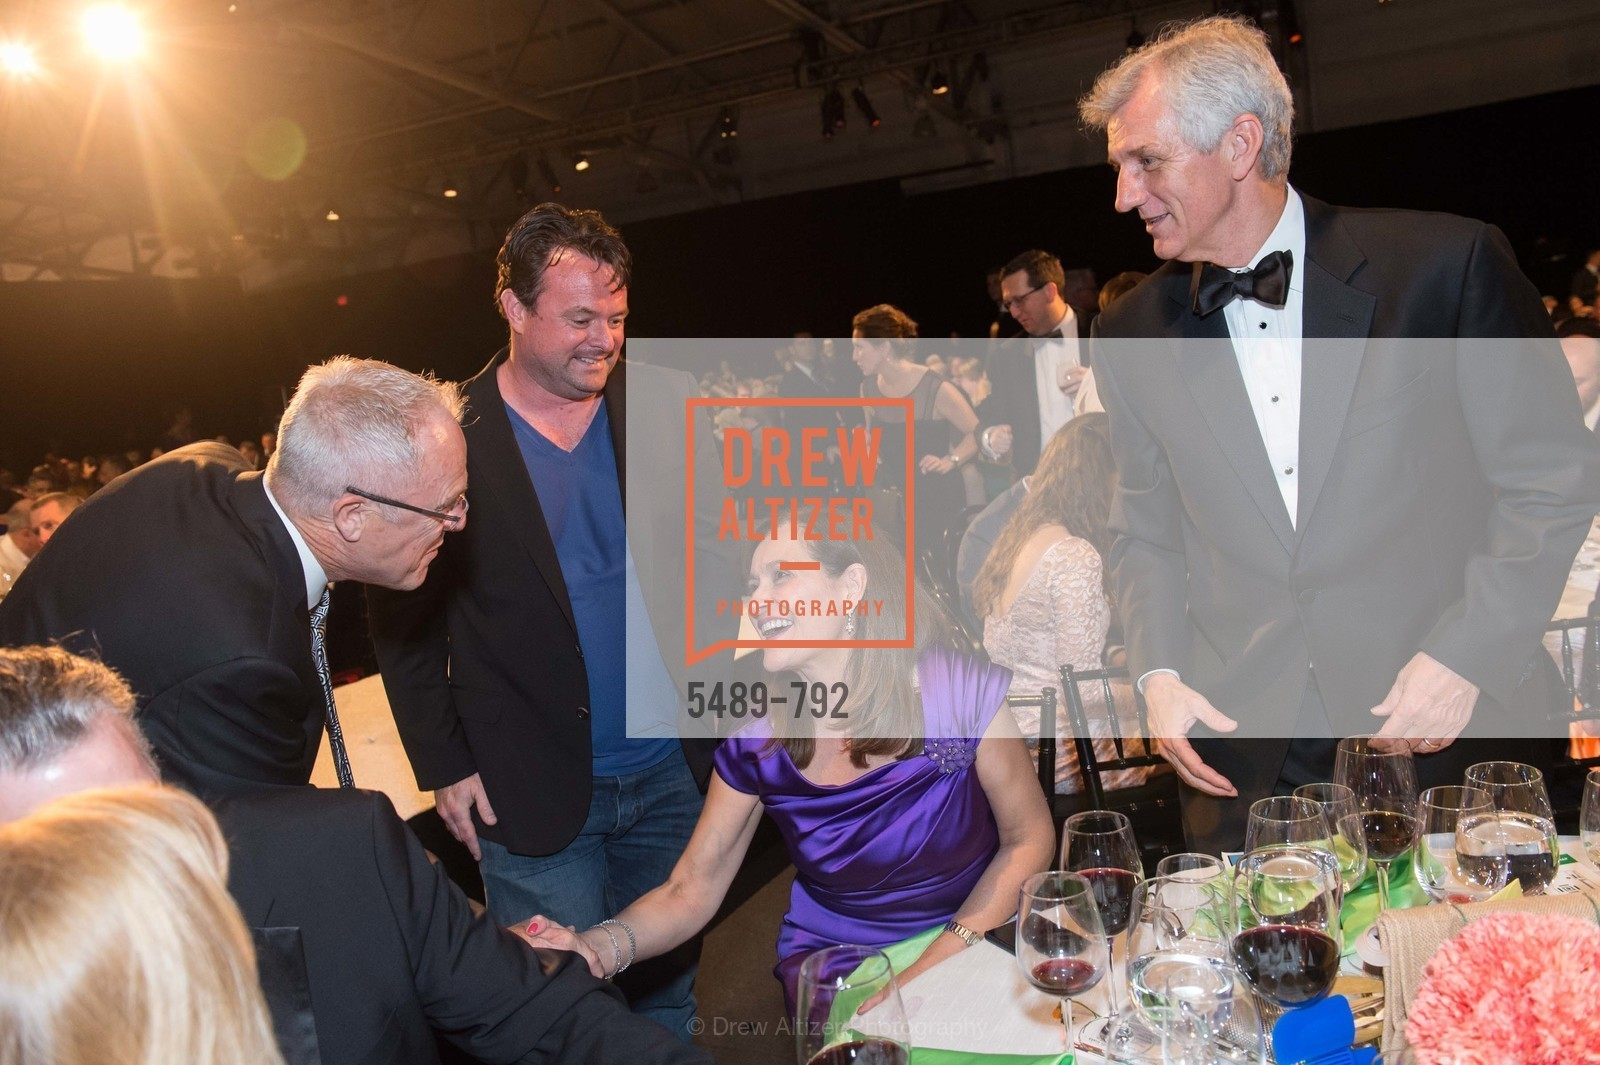 Geisha Williams, Jay Williams, MEALS ON WHEELS OF SAN FRANCISCO'S 28th Annual Star Chefs and Vintners Gala, US, April 20th, 2015,Drew Altizer, Drew Altizer Photography, full-service agency, private events, San Francisco photographer, photographer california